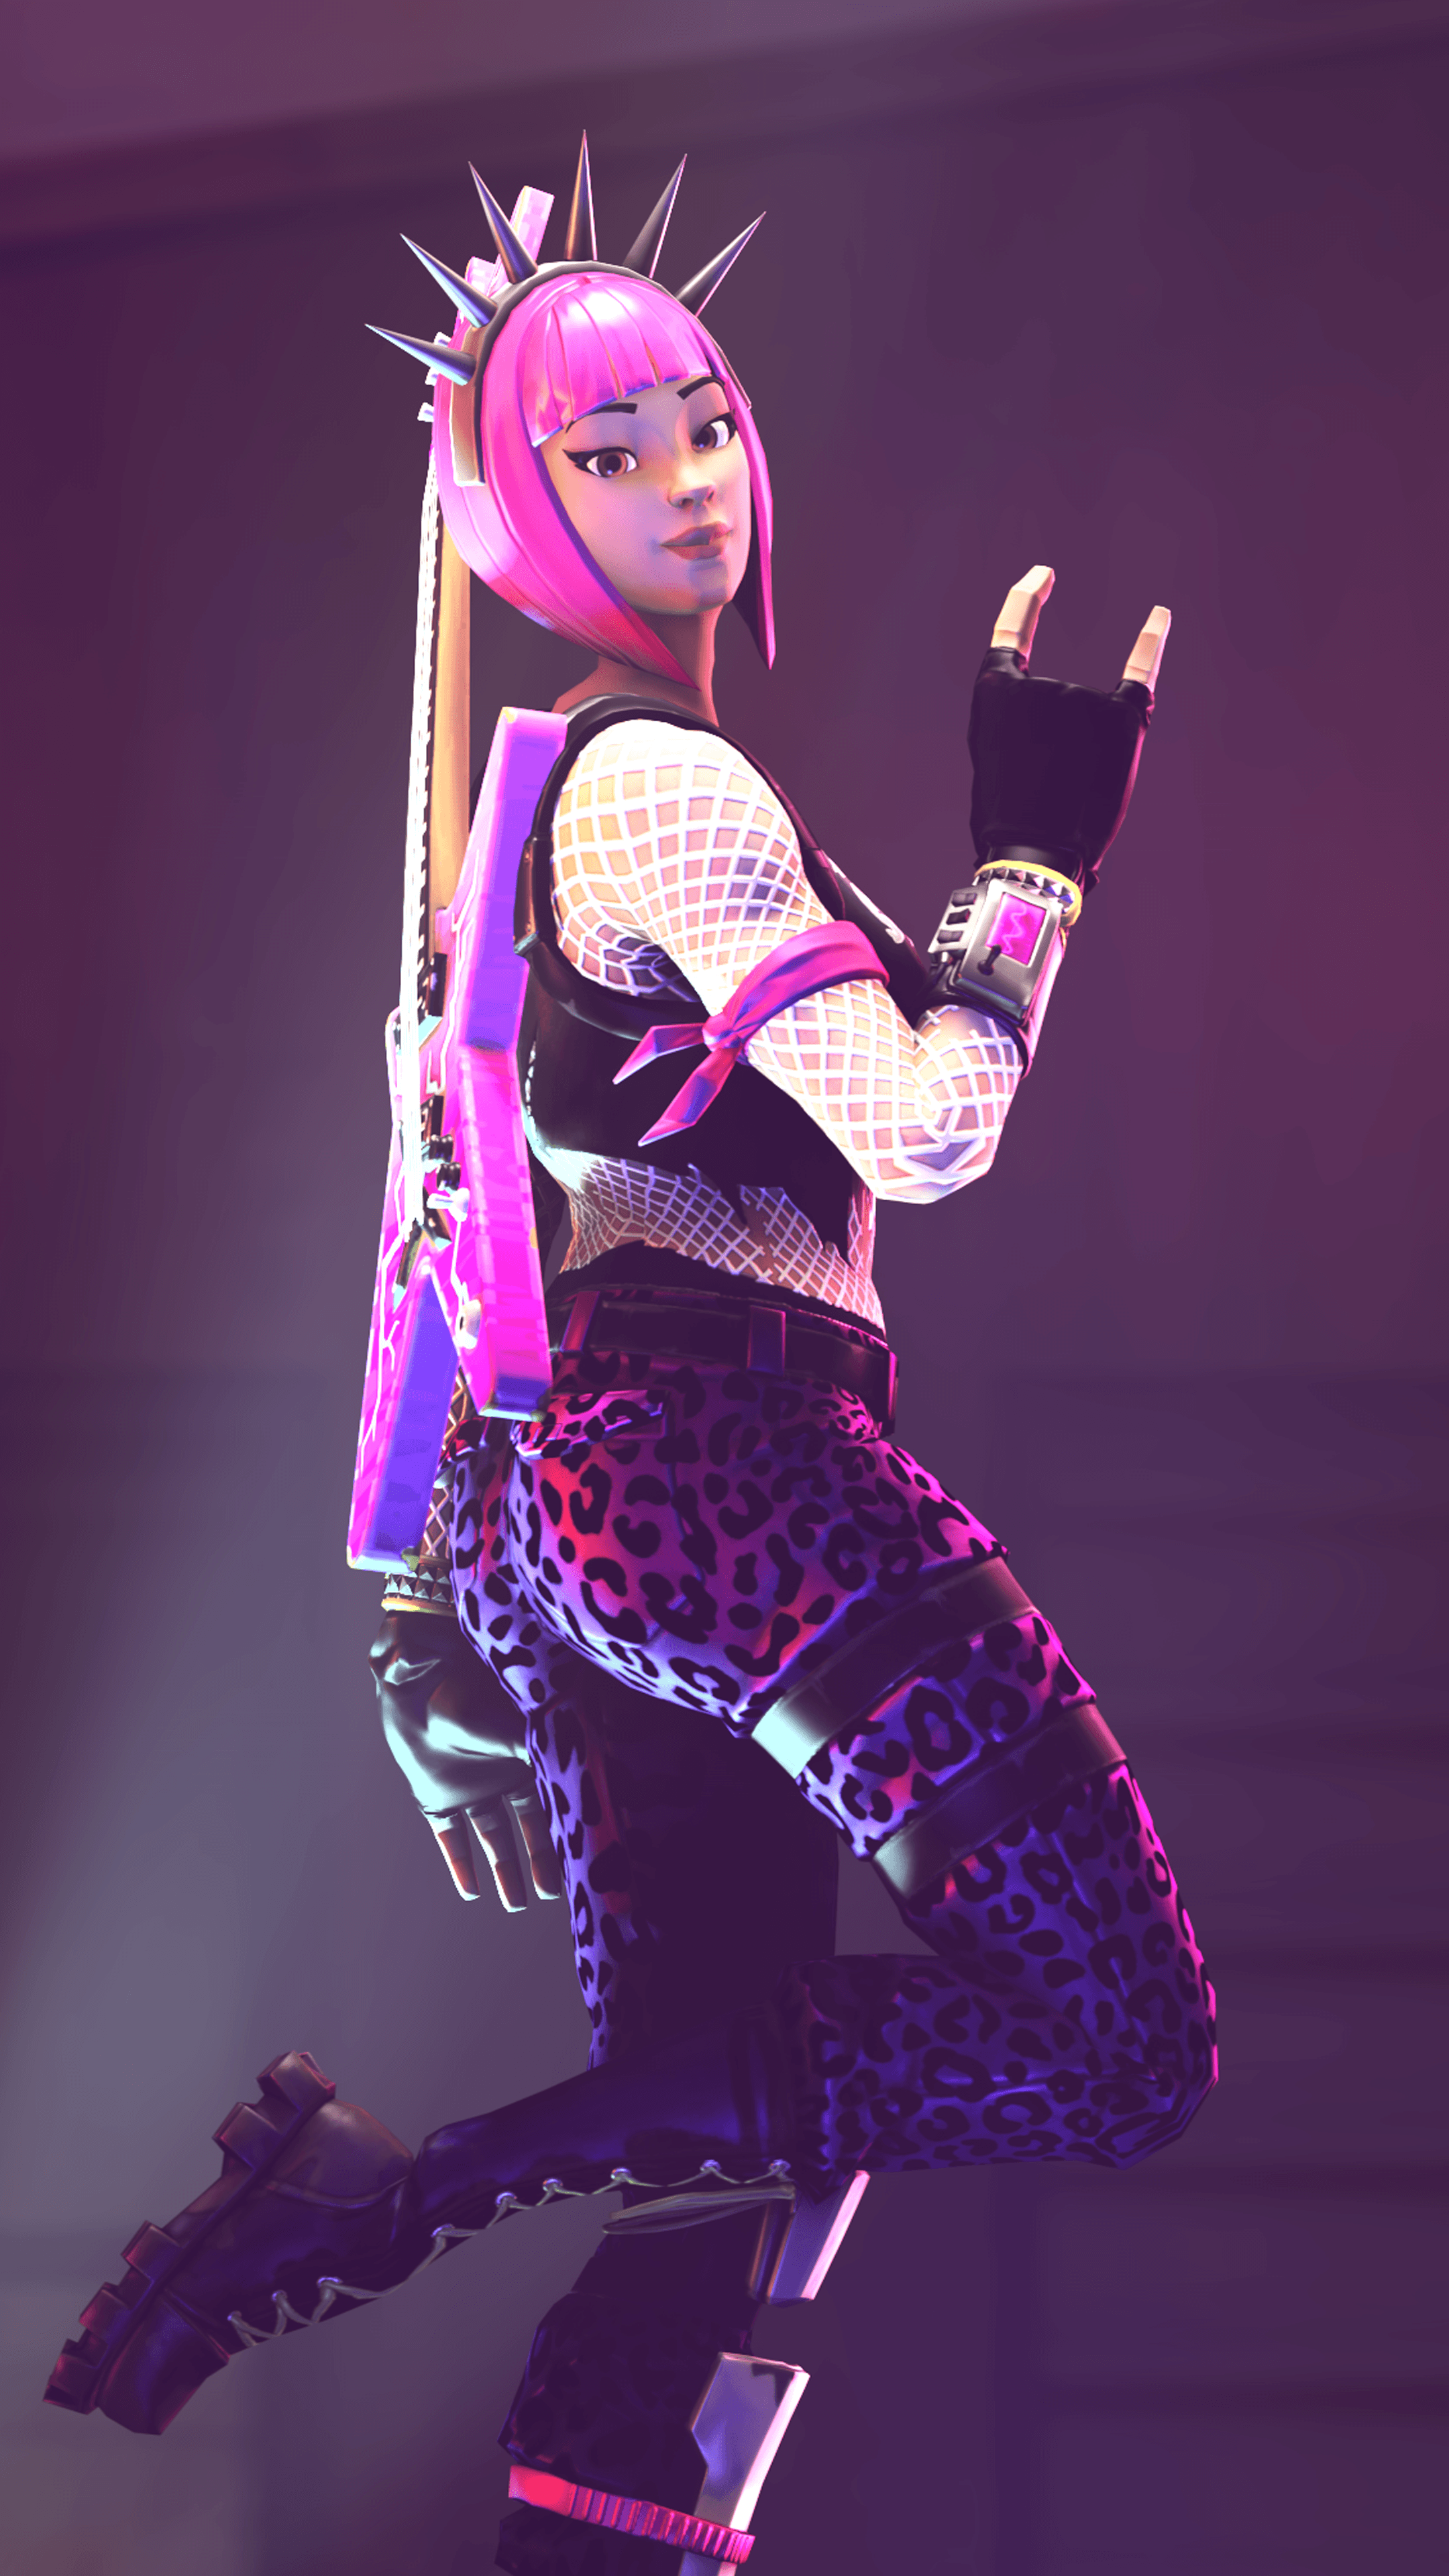 Power Chord Wallpaper : FortNiteBR